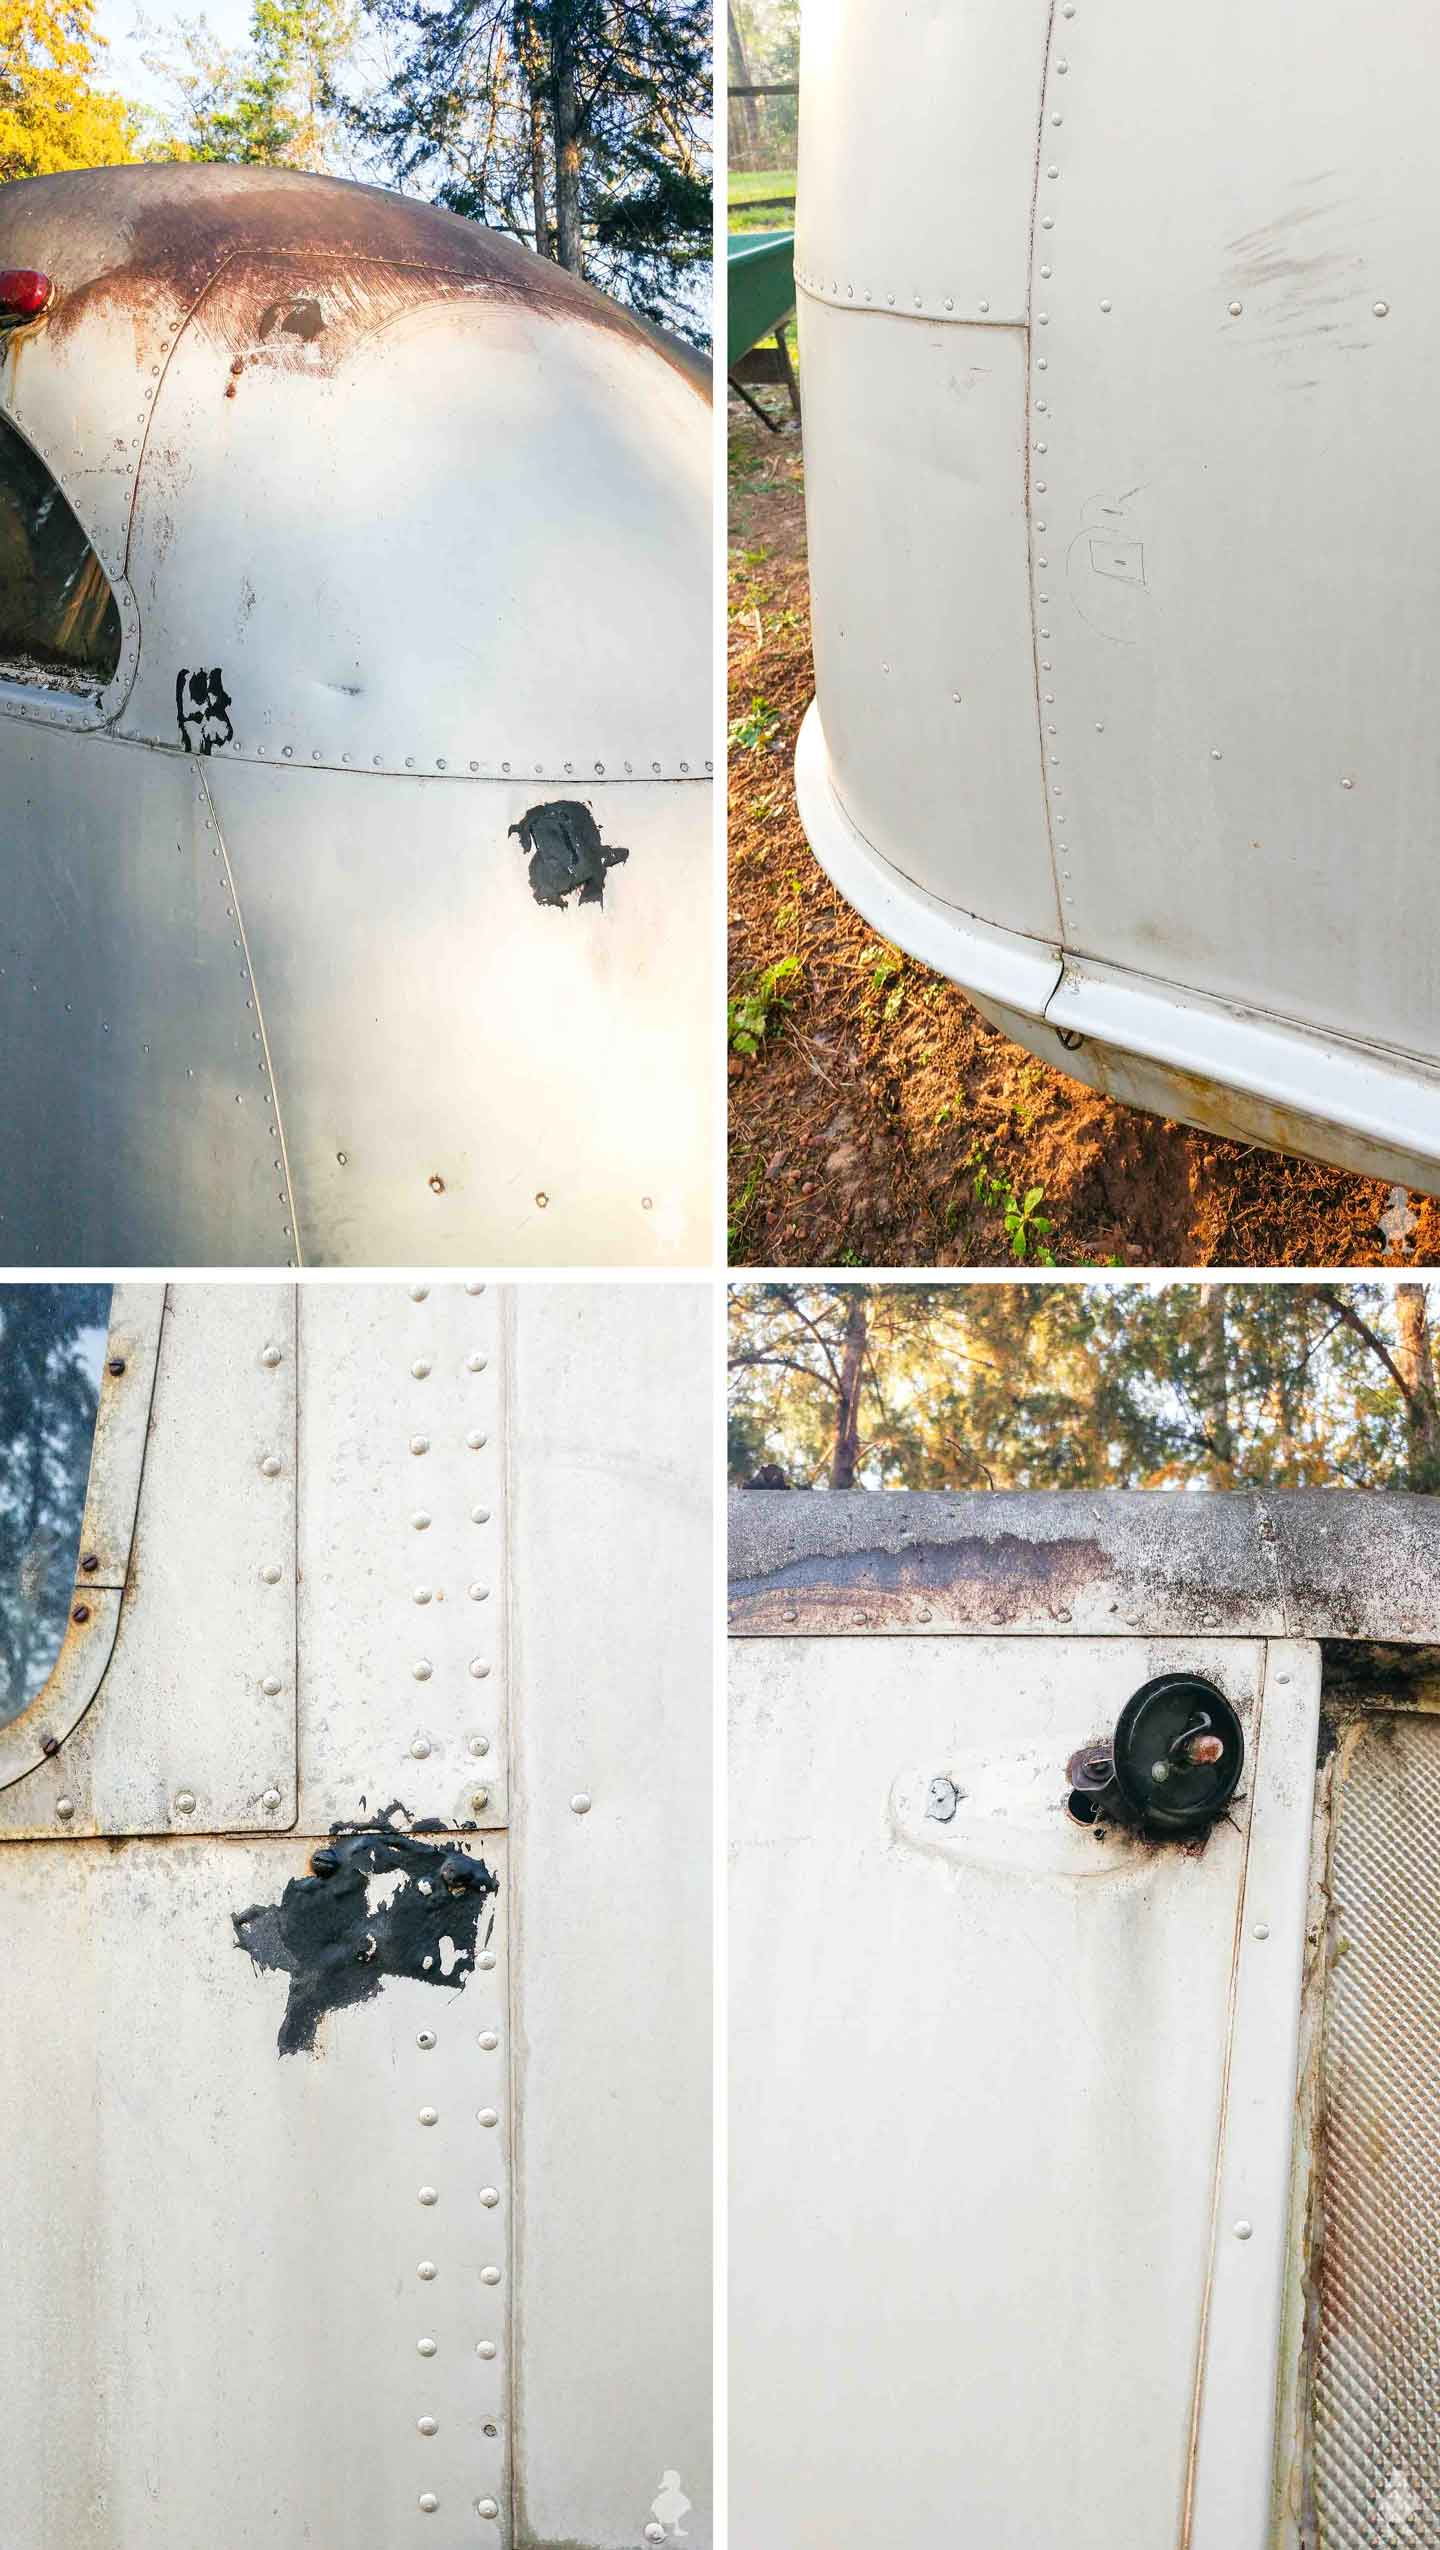 closeups of damage and repairs needed on vintage camper trailer